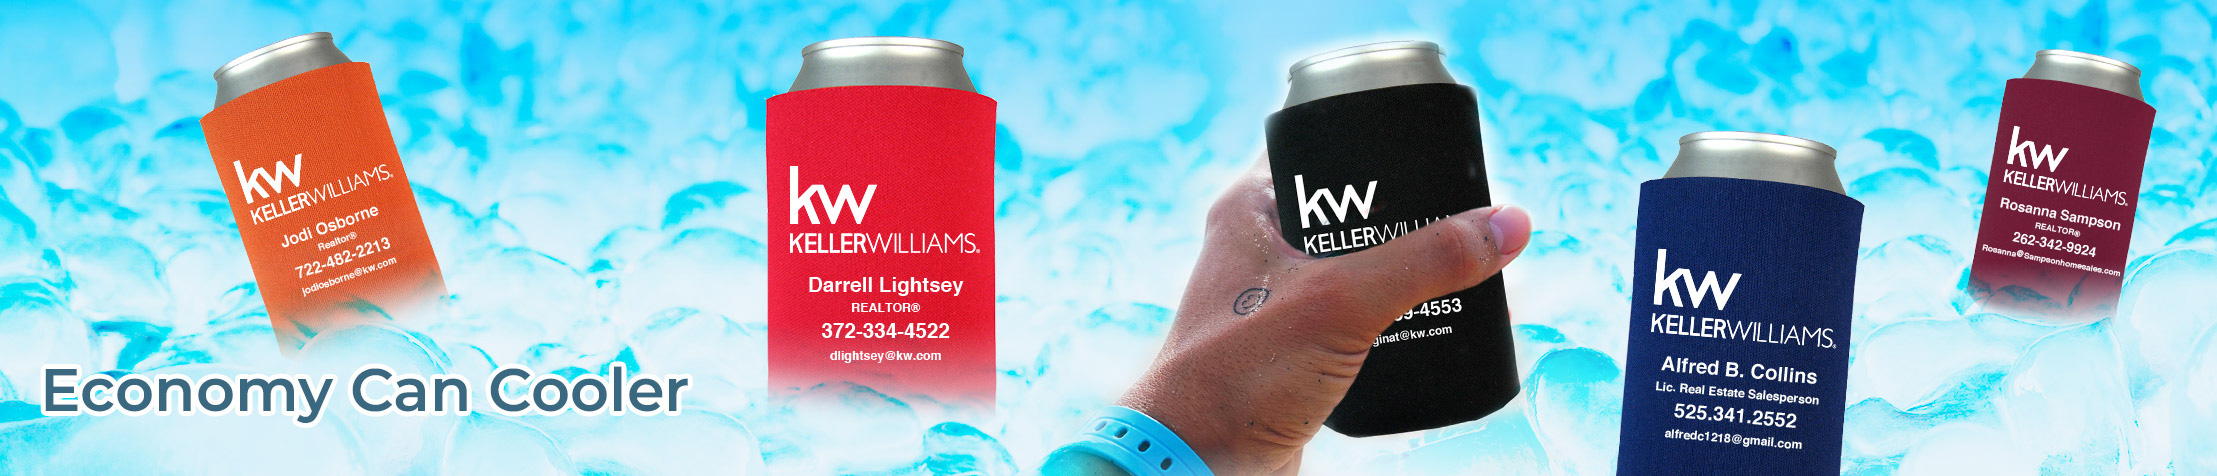 Keller Williams Real Estate Economy Can Cooler - KW approved vendor personalized realtor promotional products | BestPrintBuy.com